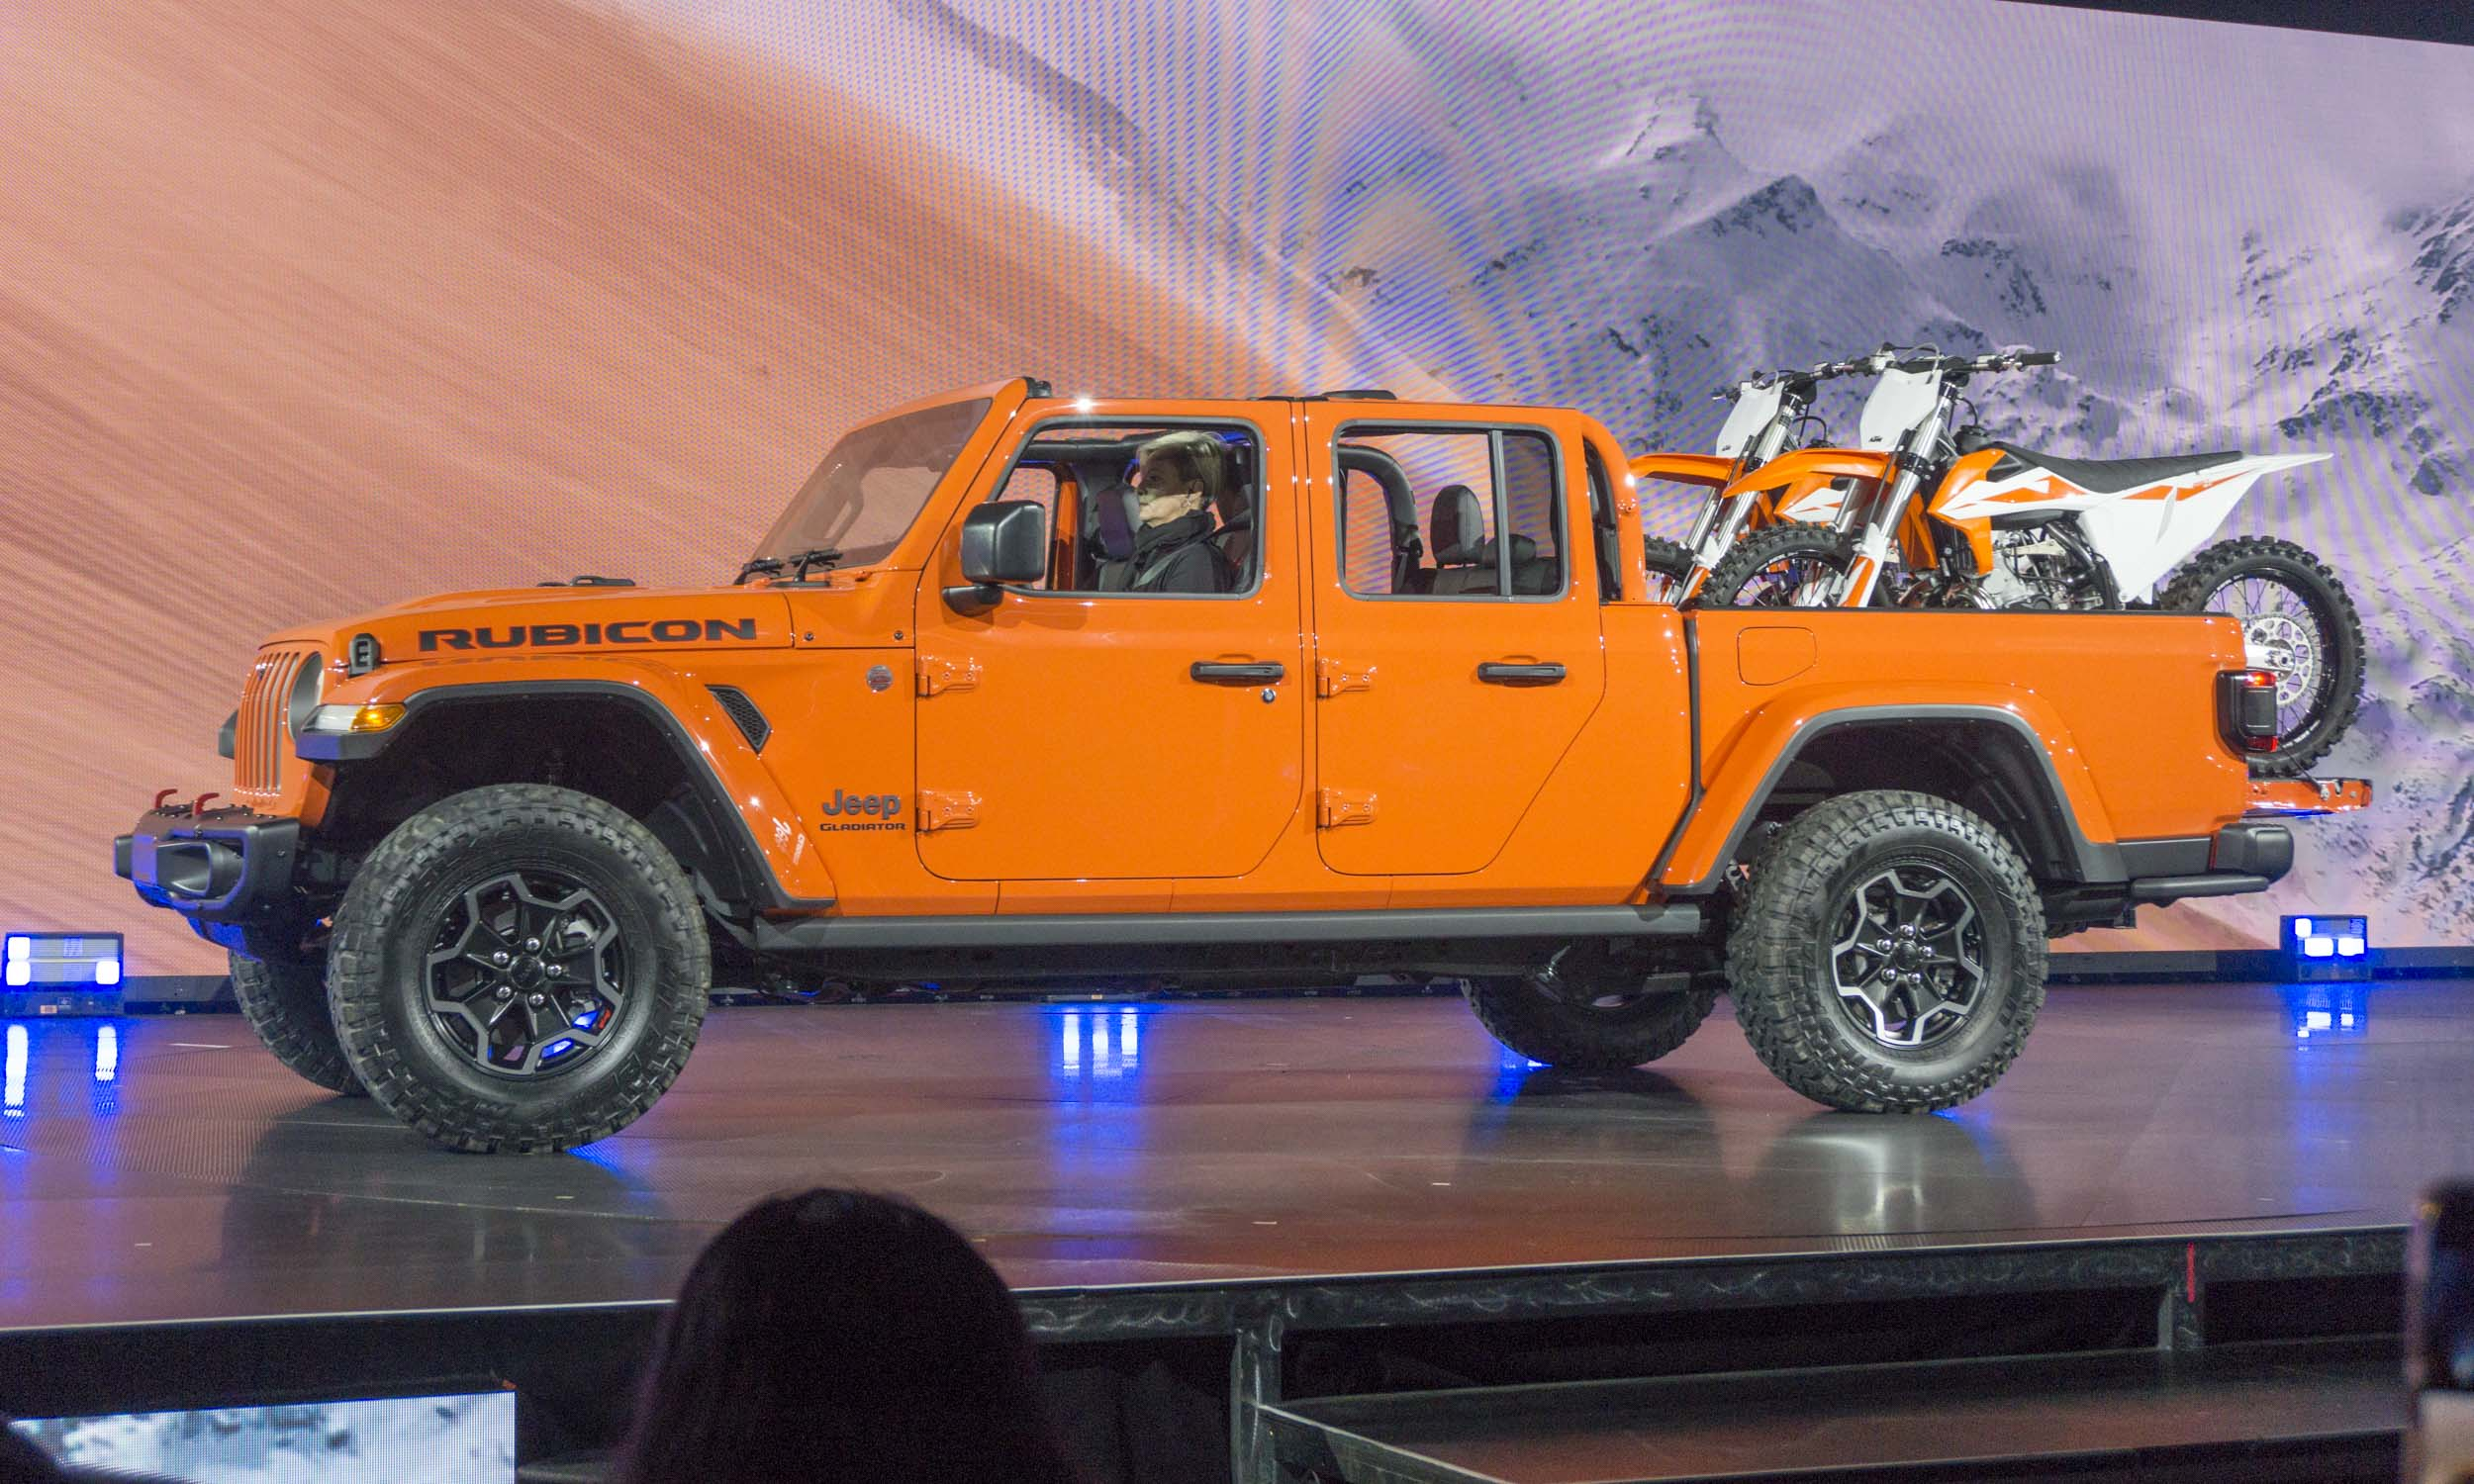 2020 Jeep Gladiator - The Off-Topic Lounge - Model Cars